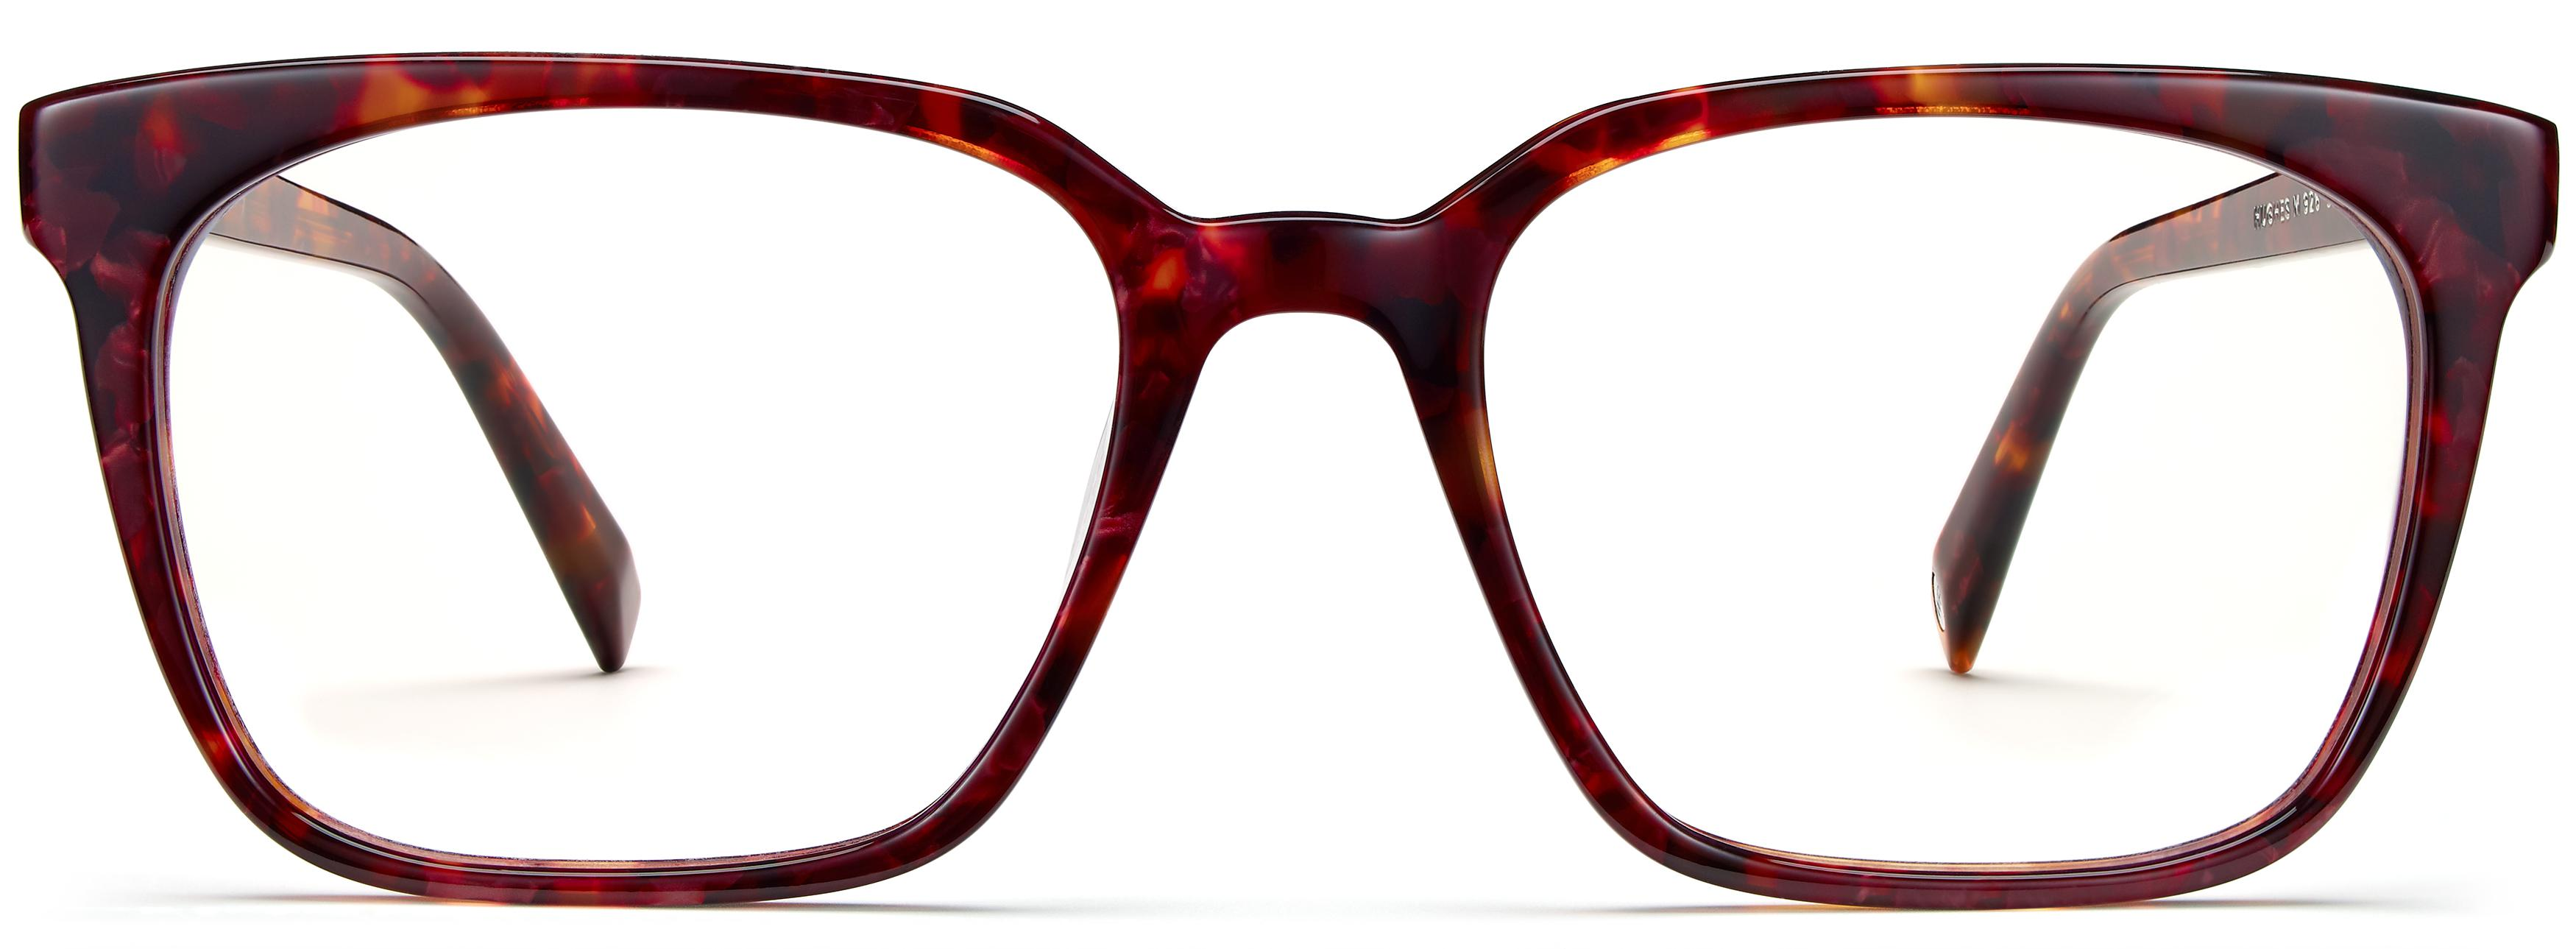 7238d52f4f Women s Eyeglasses